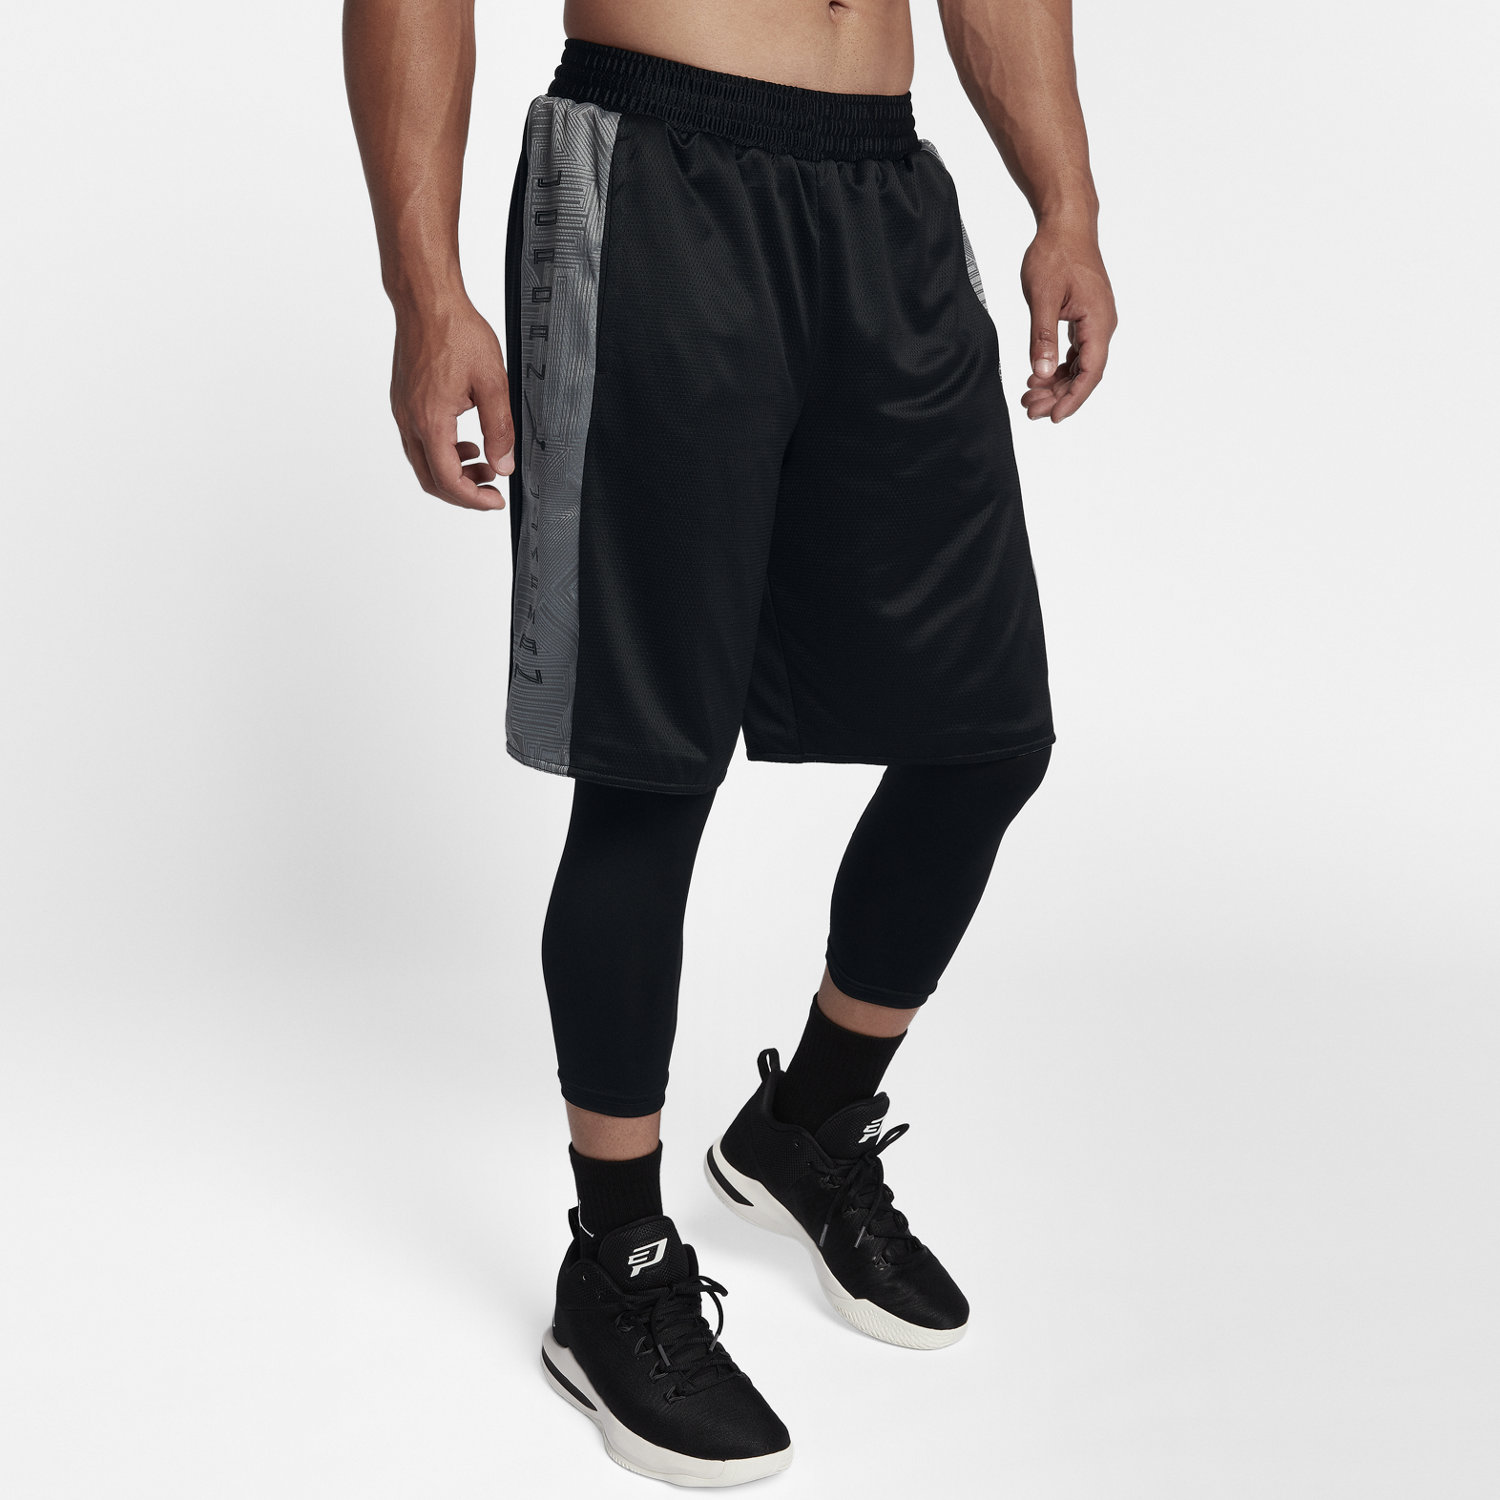 Mens basketball shorts on sale free shipping - Mens Basketball Shorts On Sale Free Shipping 31